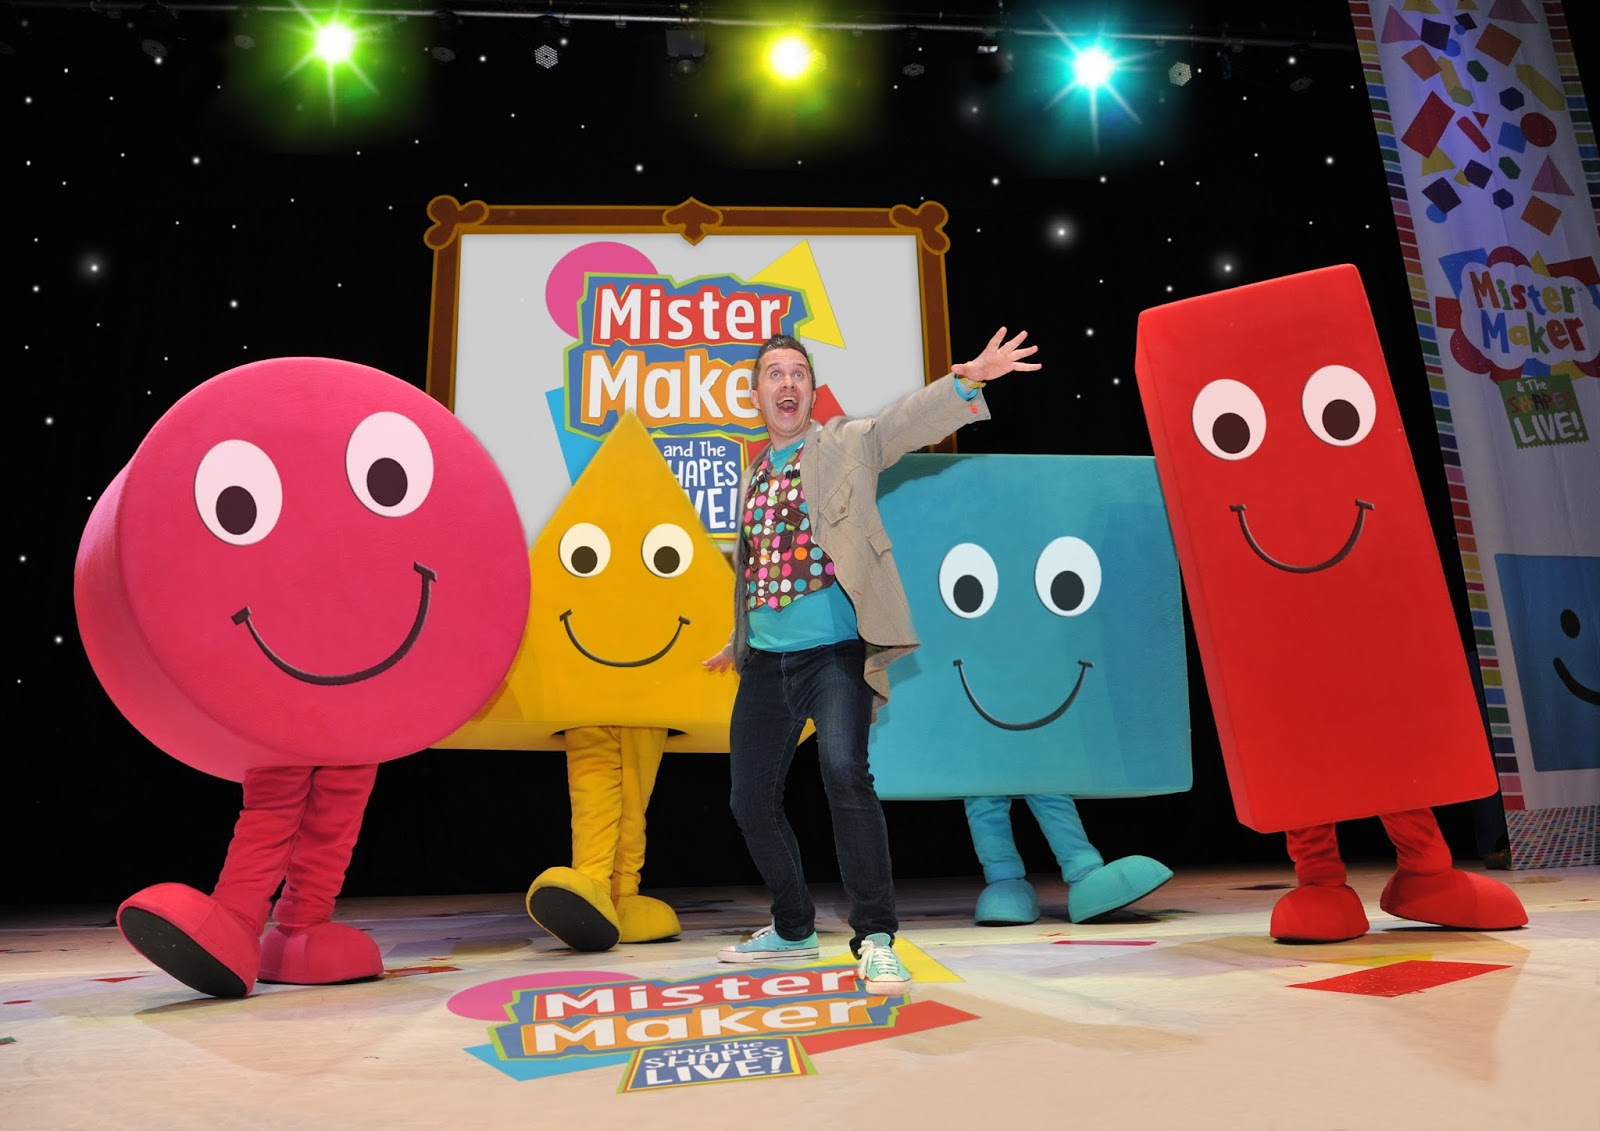 Mister Maker & The Shapes Live visits Whitley Bay Playhouse this July | Win Tickets & Meet Mister Maker in our Giveaway